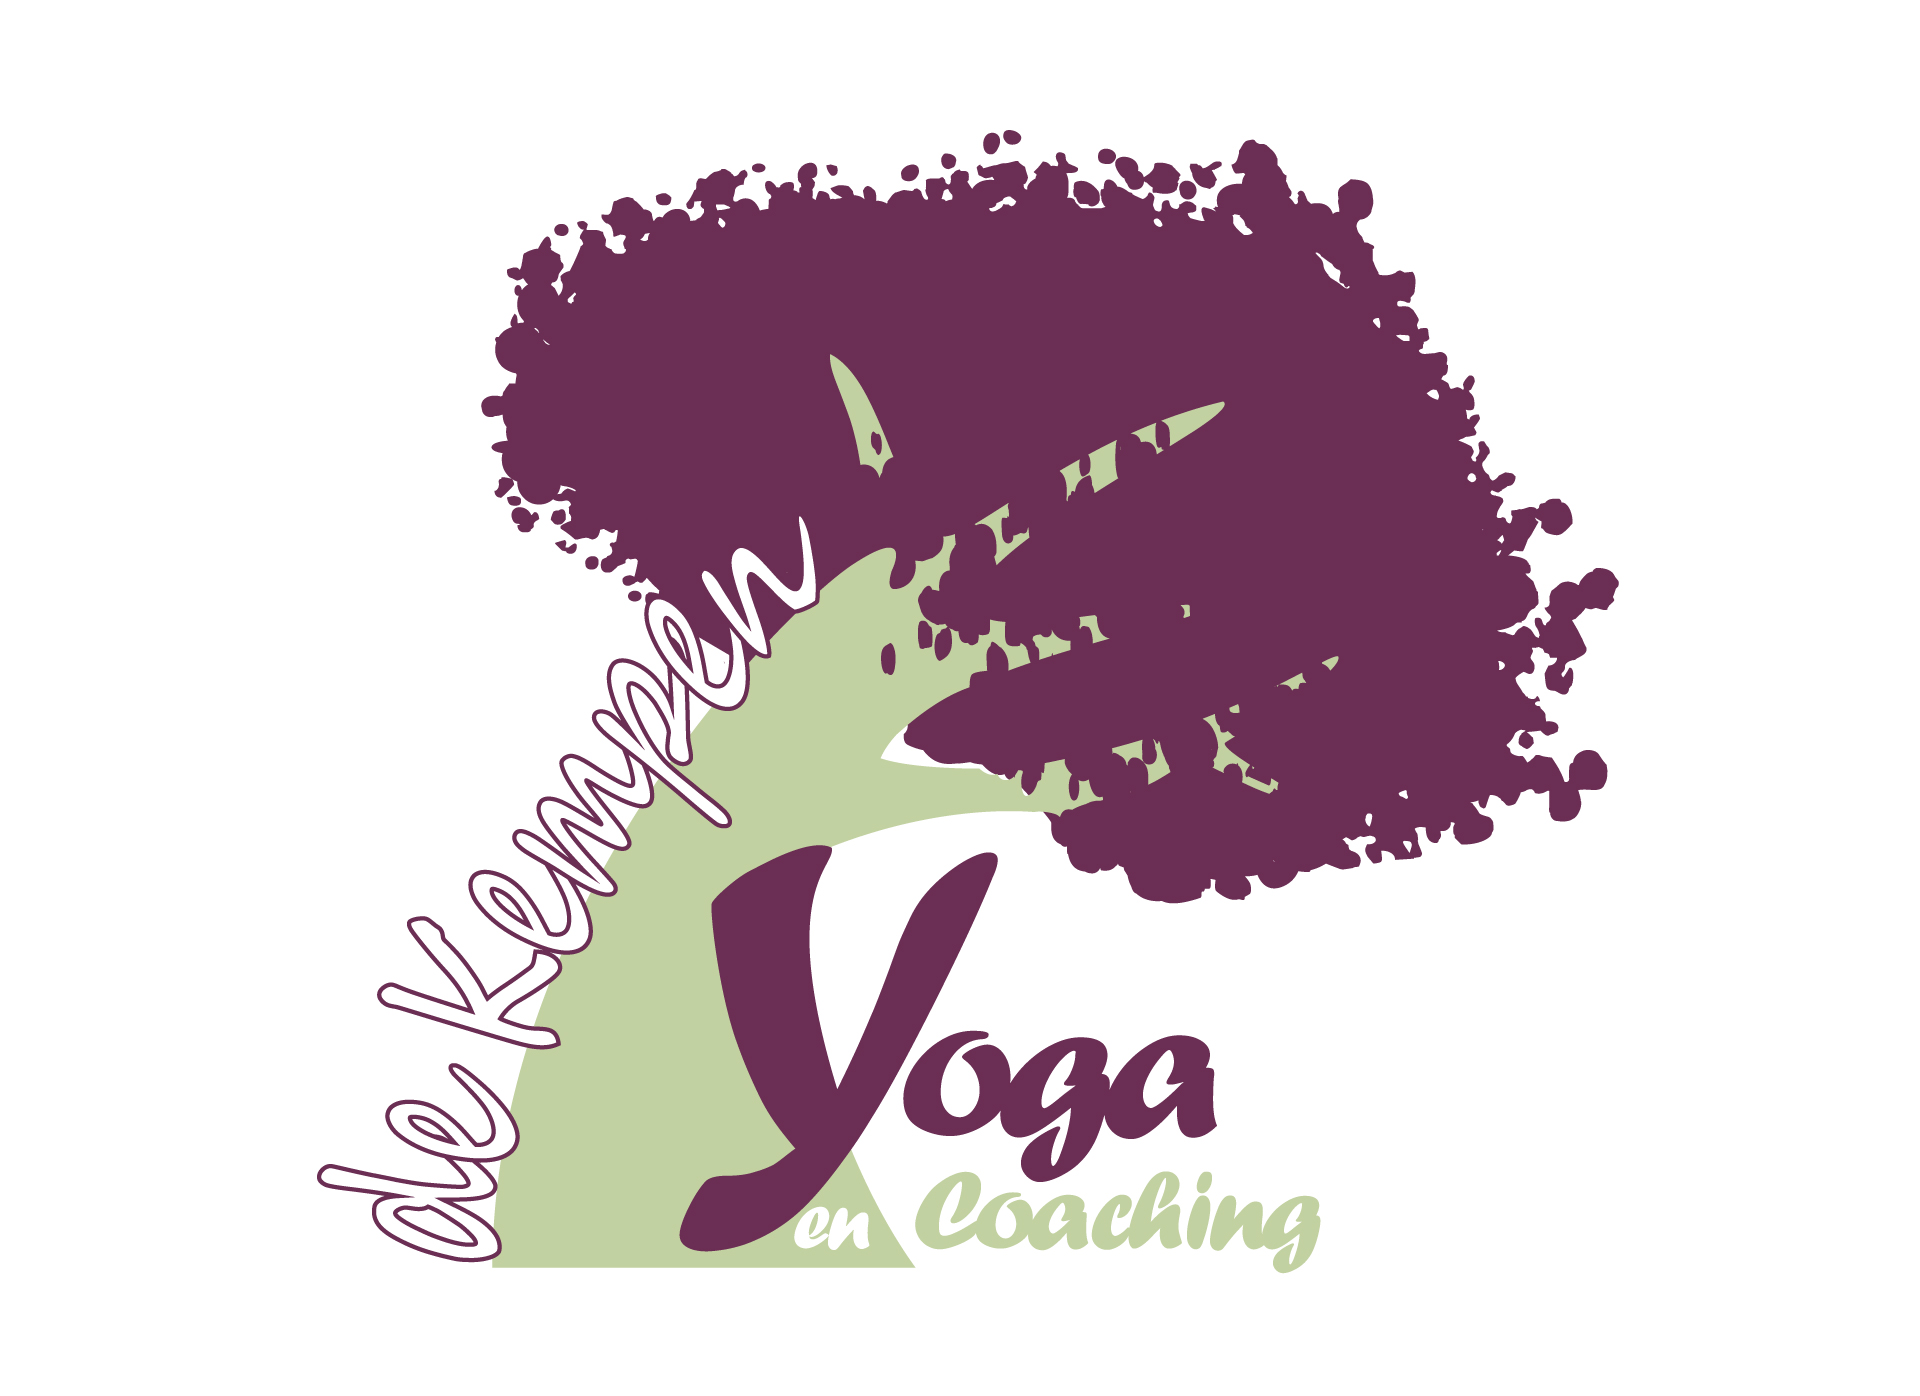 Yoga en coaching de Kempen